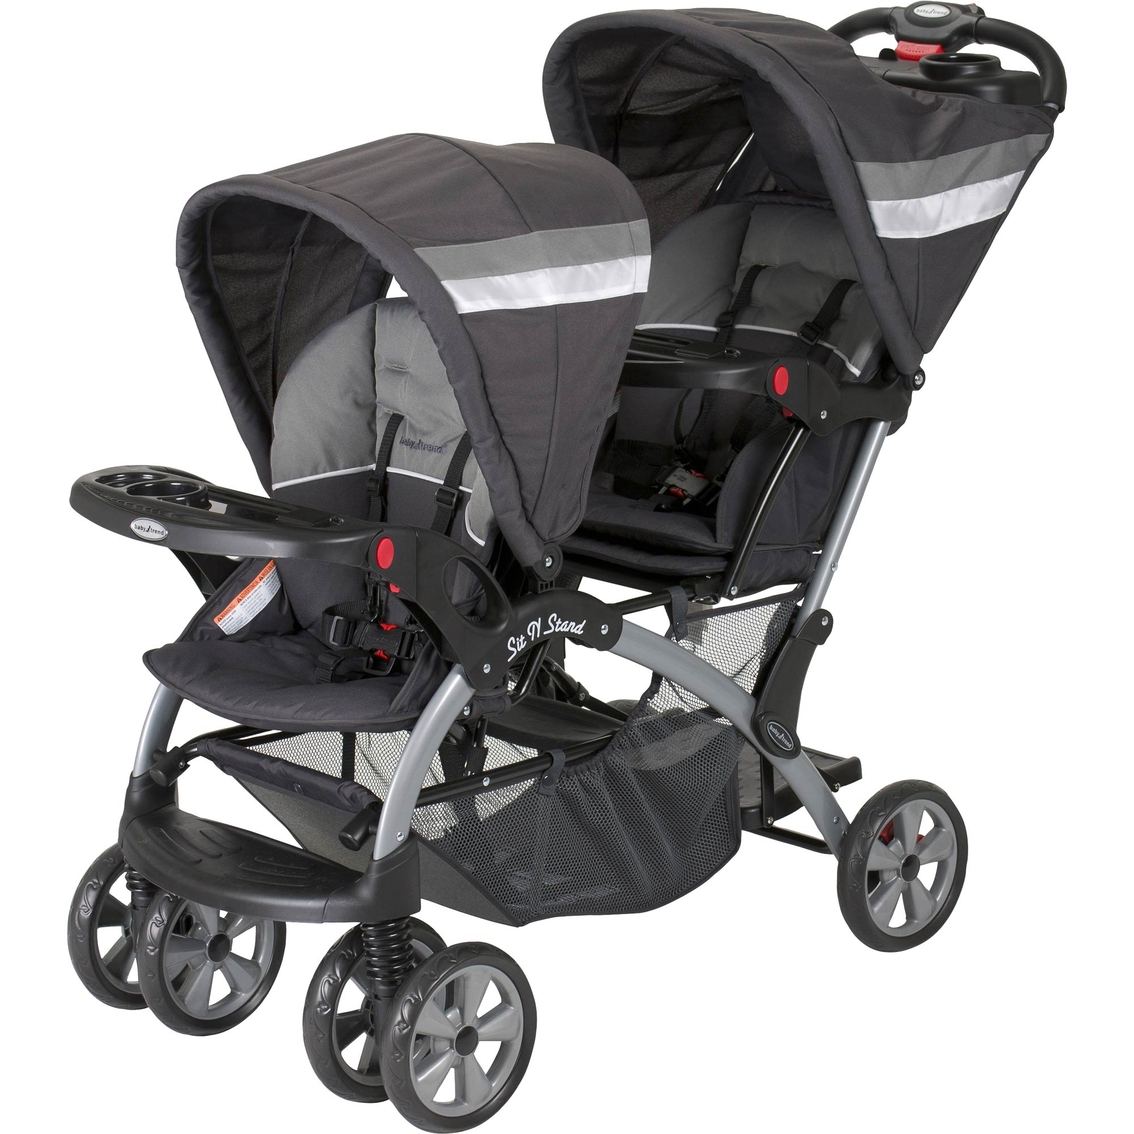 Admirable Stand Stroller Recall Baby Trend Sit Stand Stroller Directions Baby Trend Sit N Stand Liberty Multiple Baby Toys Baby Trend Sit baby Baby Trend Sit And Stand Double Stroller